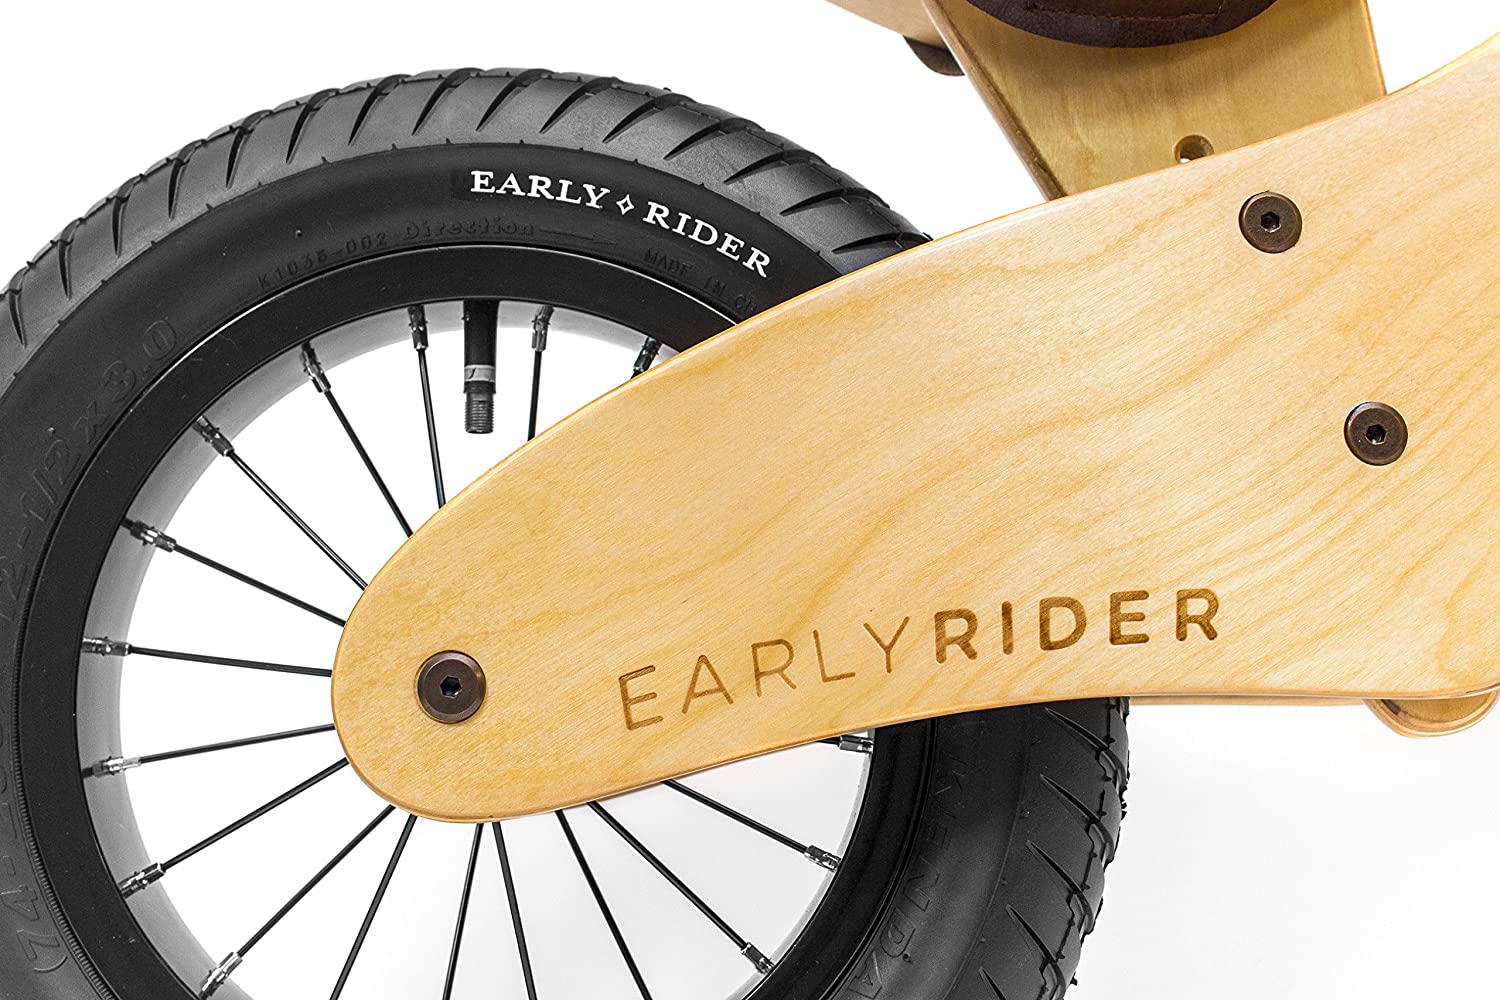 Early Rider Classic 12/ 14 - Bicicleta sín pedales en madera ...